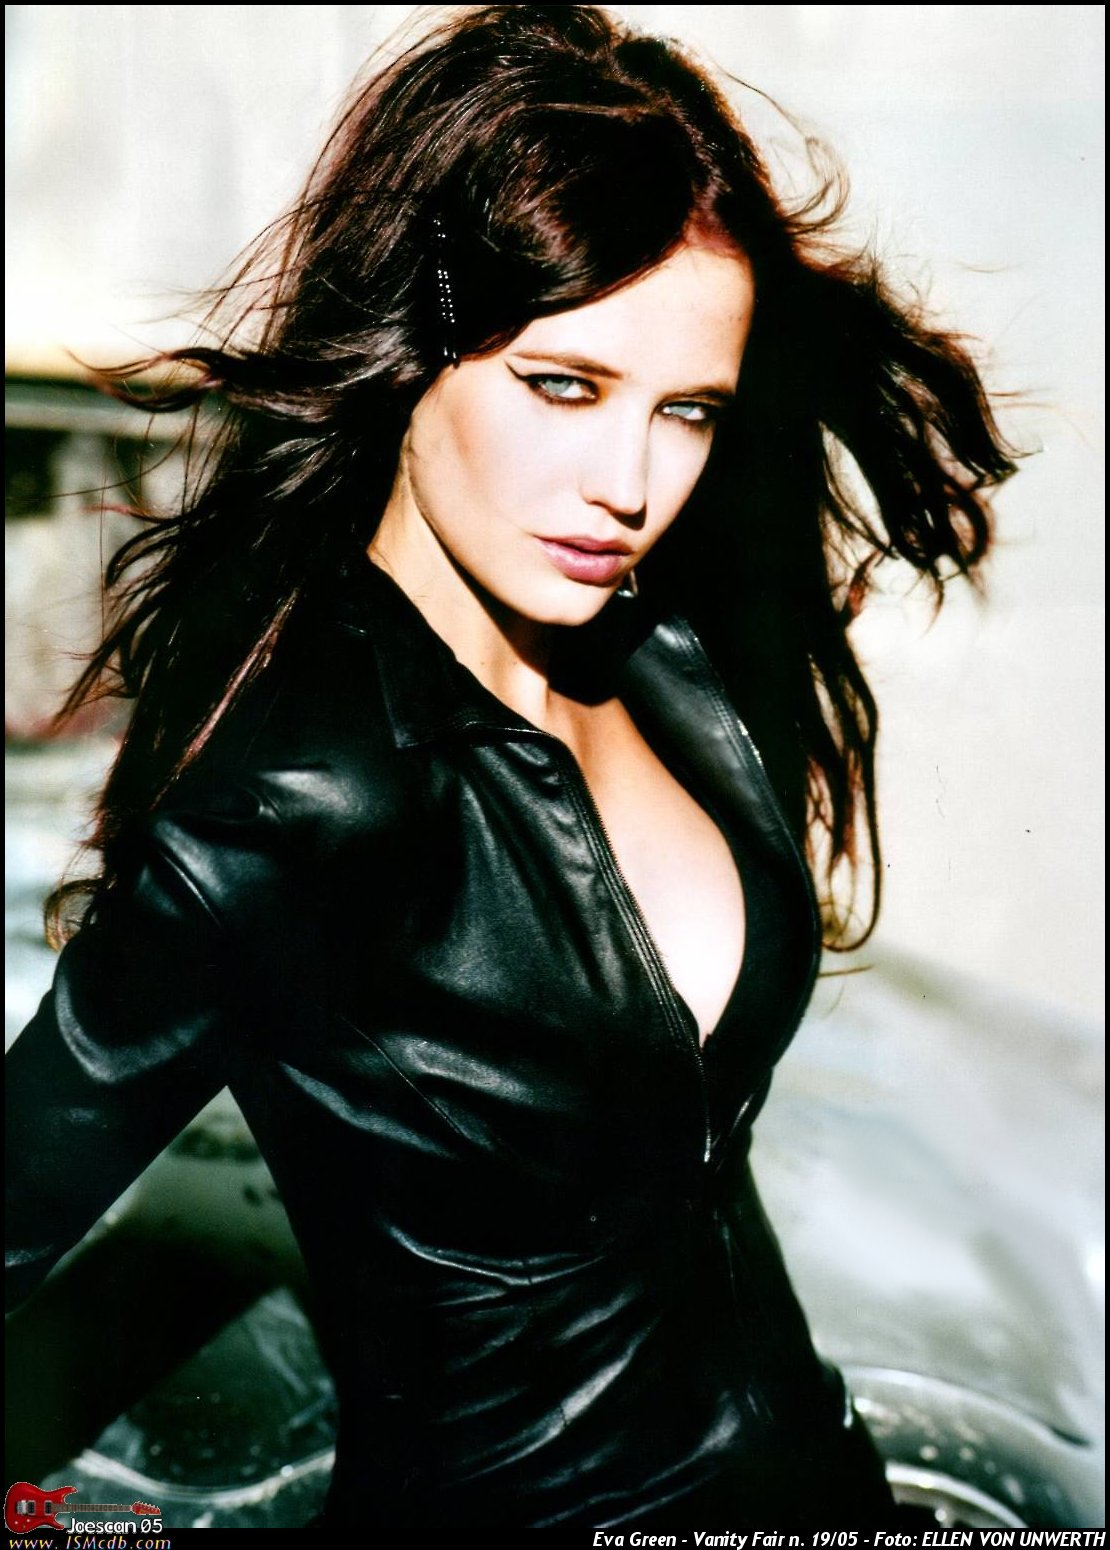 Eva Green - Eva Green Photo (244844) - Fanpop Eva Green Images